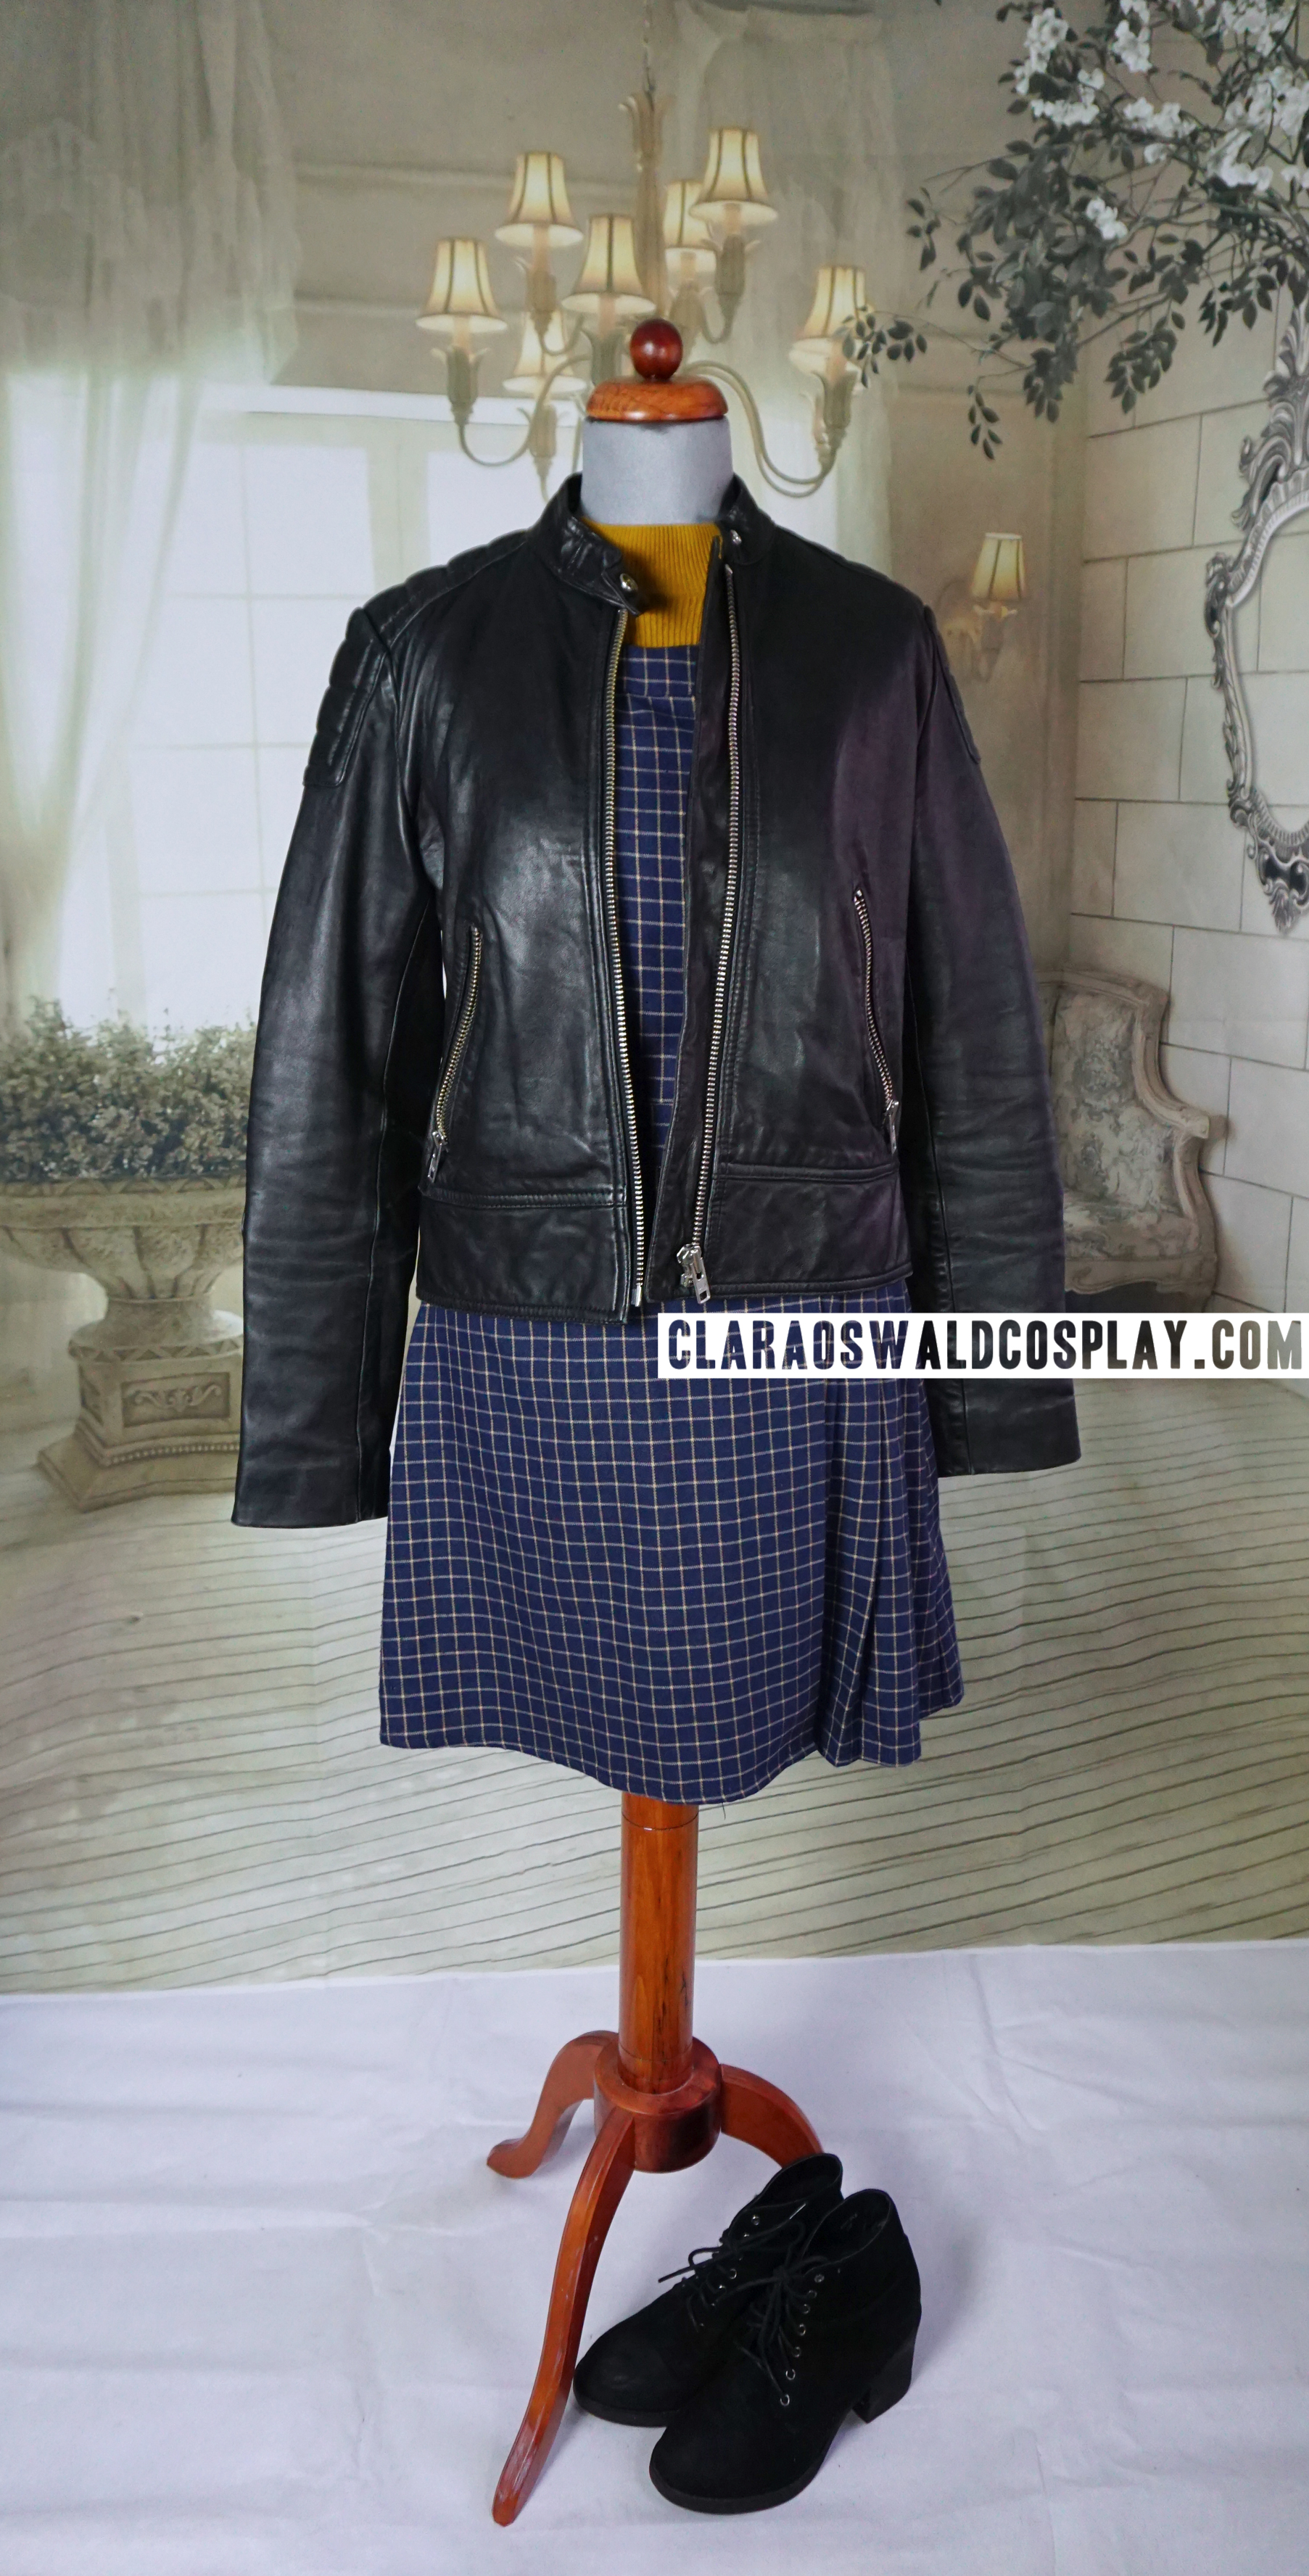 Clara Oswald's Under the Lake / Before the Flood outfit featuring the &Other Stories Leather Jacket, Miss Patina Primrose Pinafore and Topshop Mustard Crop Jumper